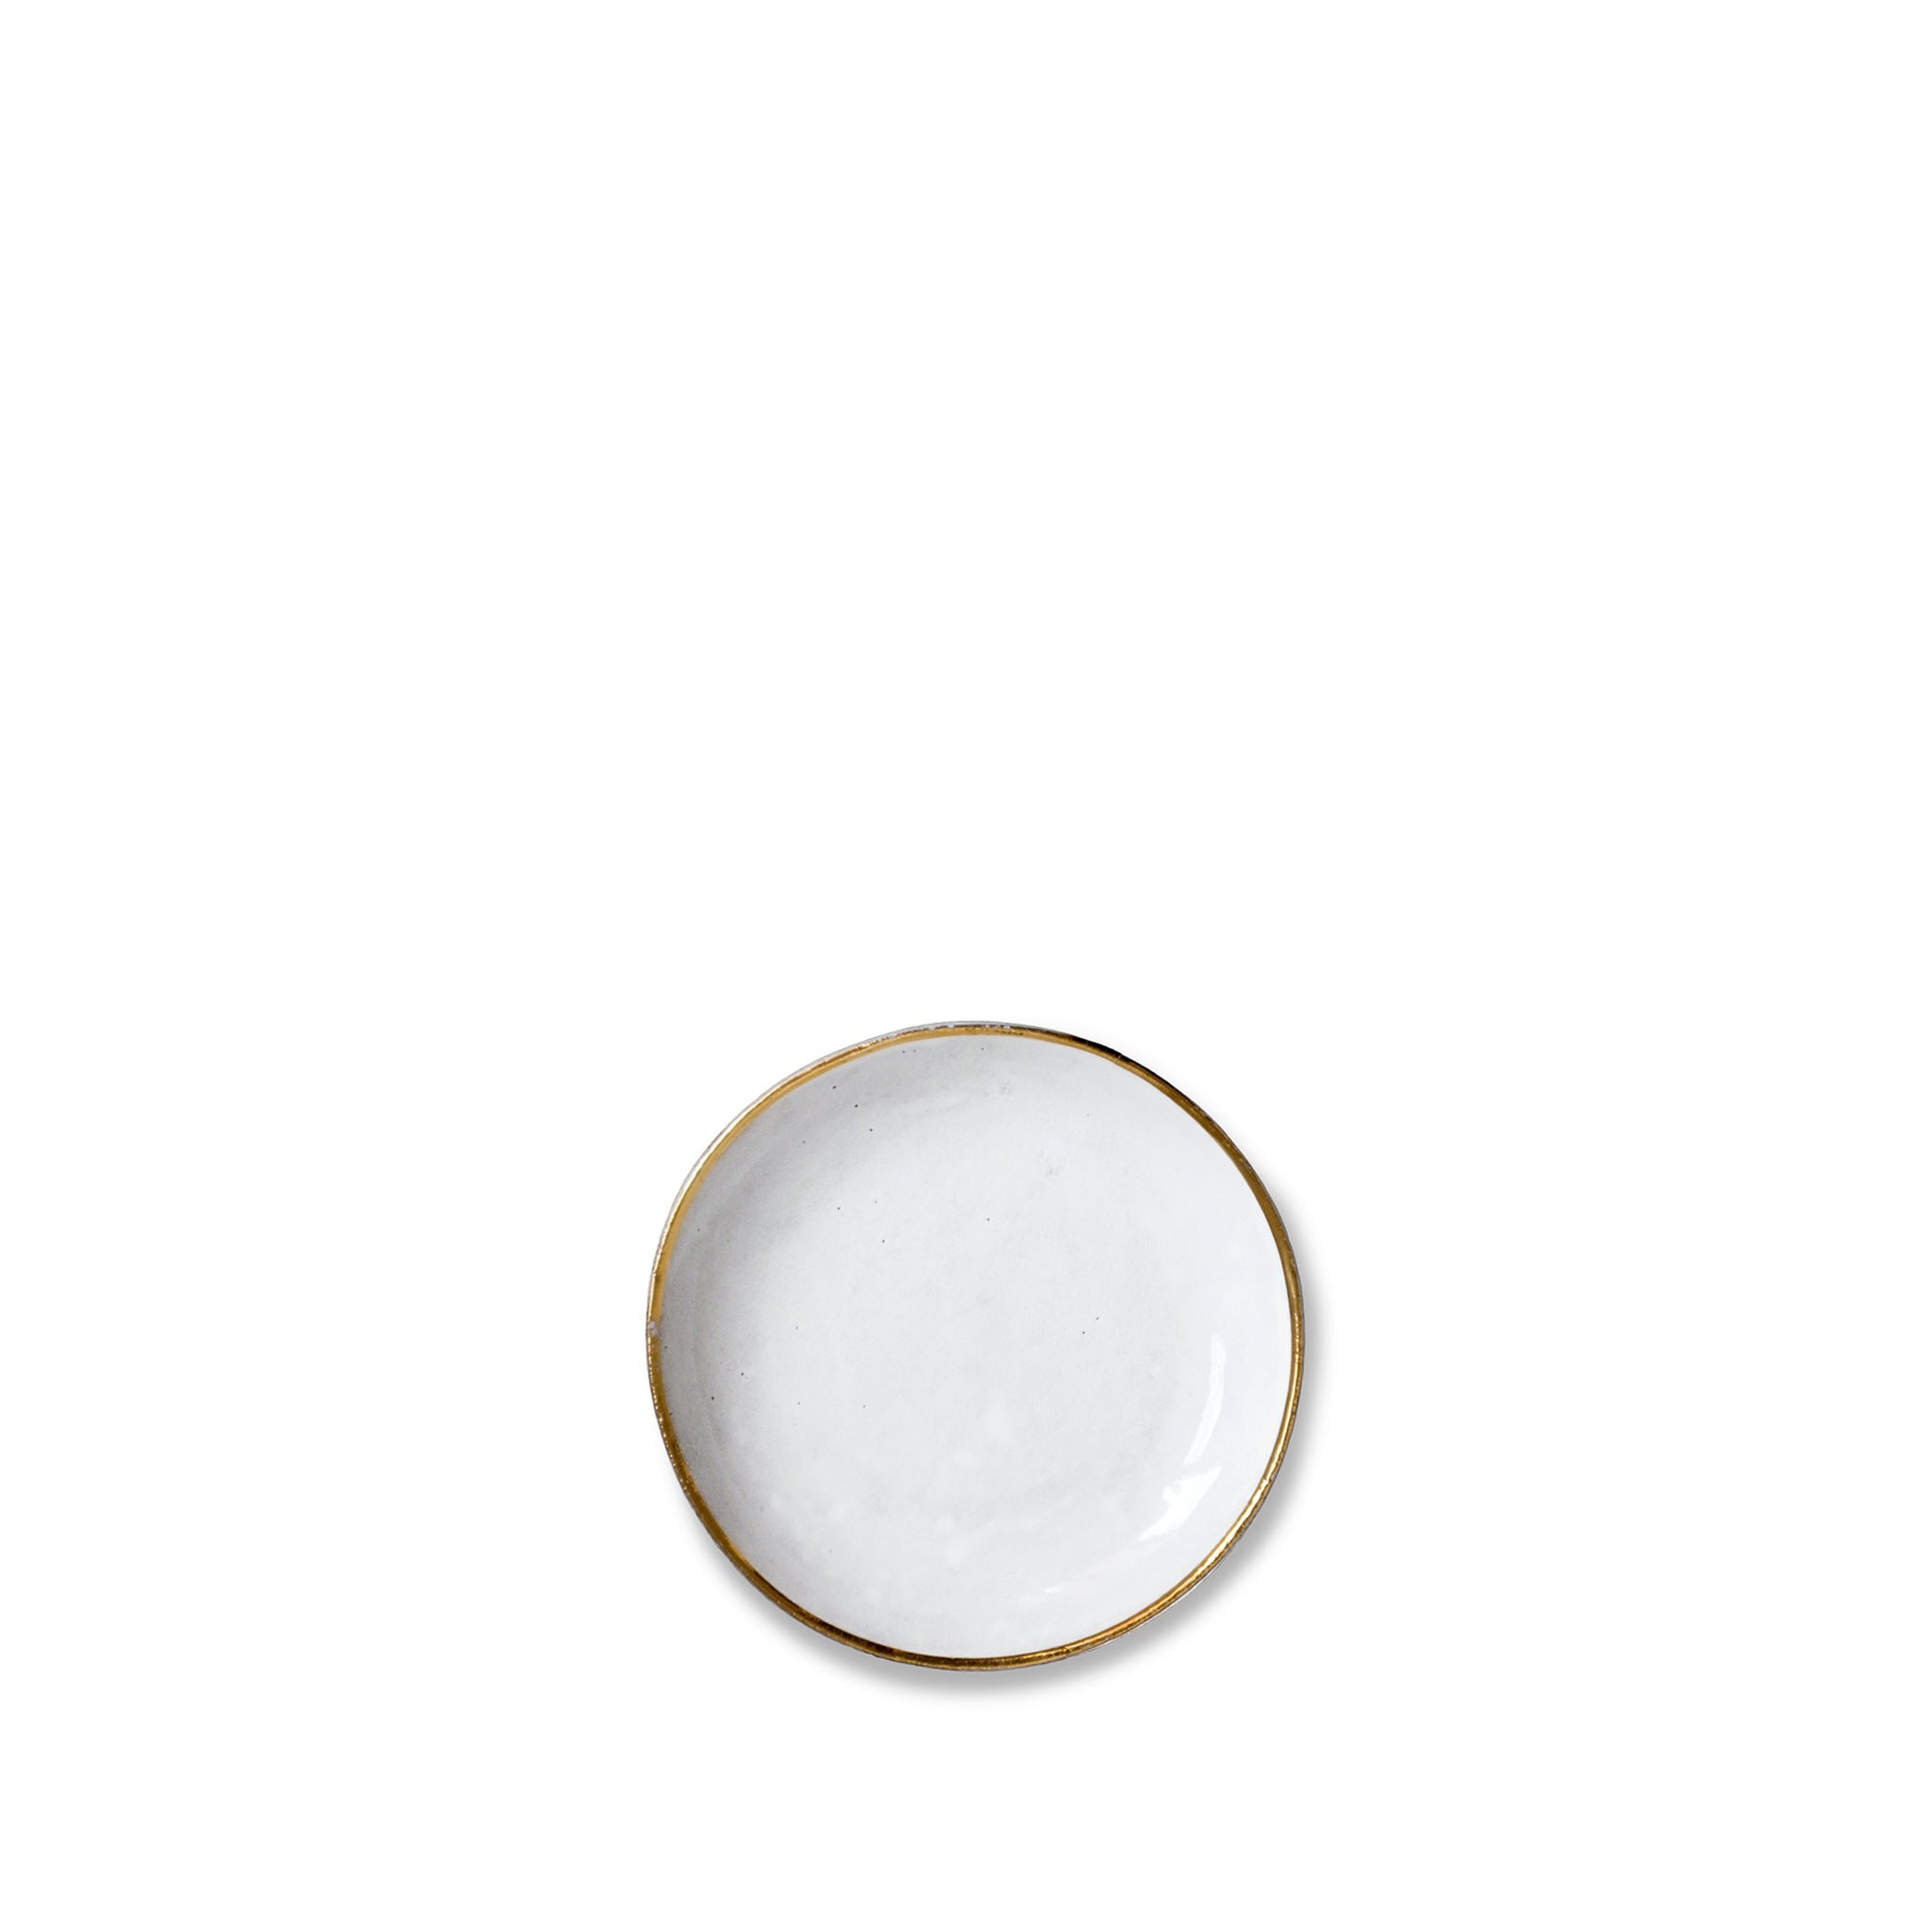 Crésus Side Plate with Gold Rim by Astier de Villatte